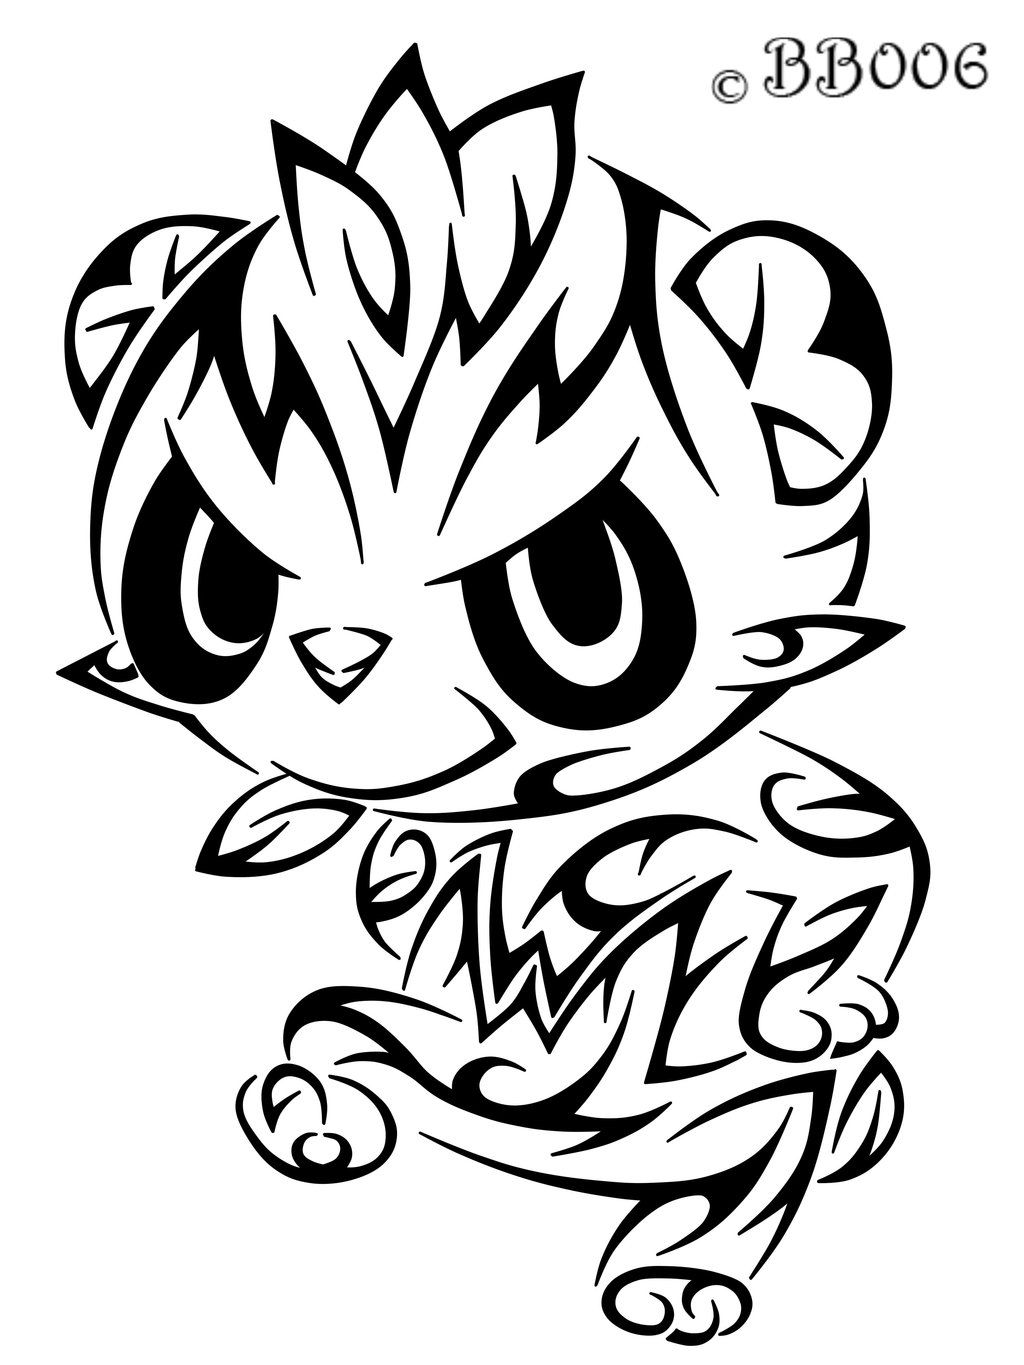 Pokemon coloring pages pancham - Pokemon Pictures Pancham Tribal Pancham By Blackbutterfly006 On Deviantart